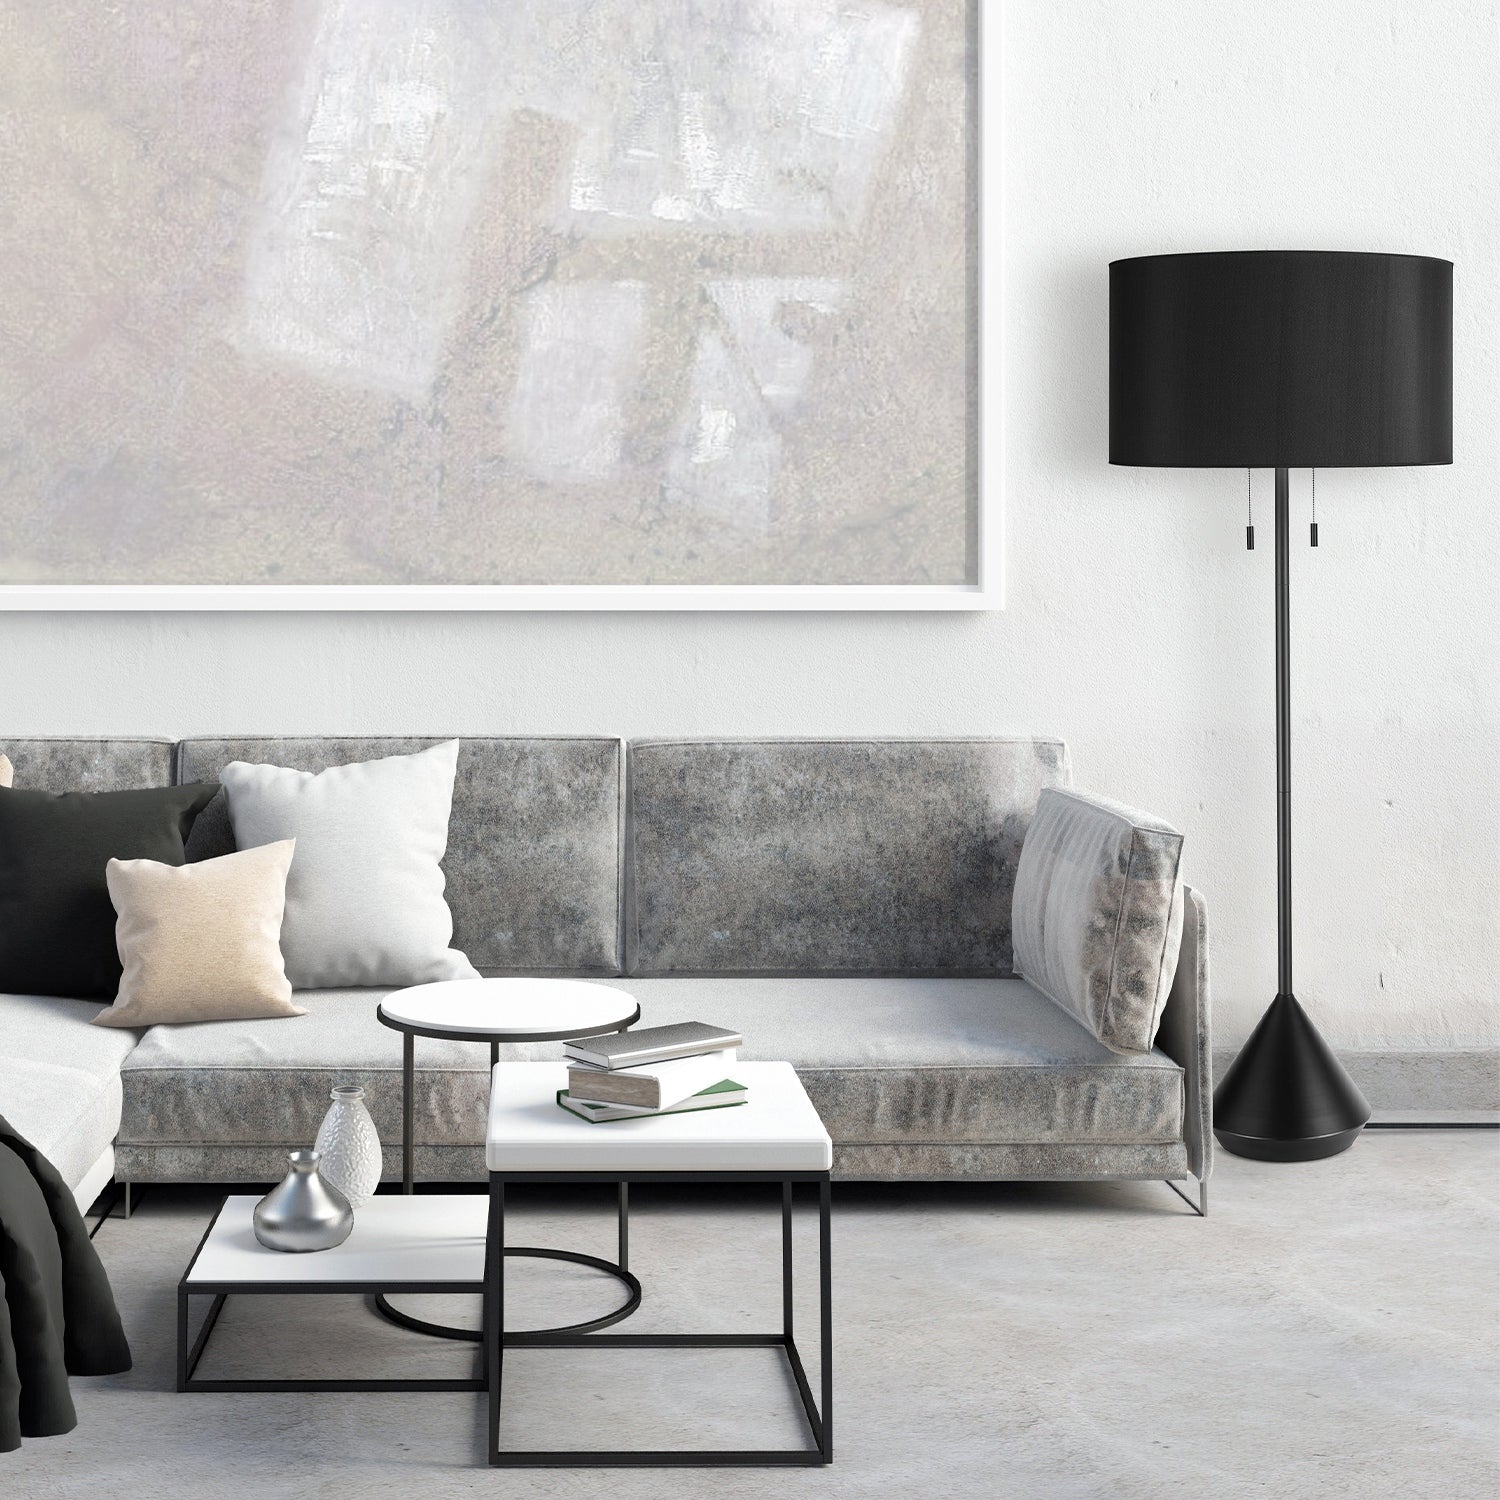 Shop Kara 60 2 Light Black Floor Lamp With Cec Title20 Led Bulbs Included Overstock 32234276